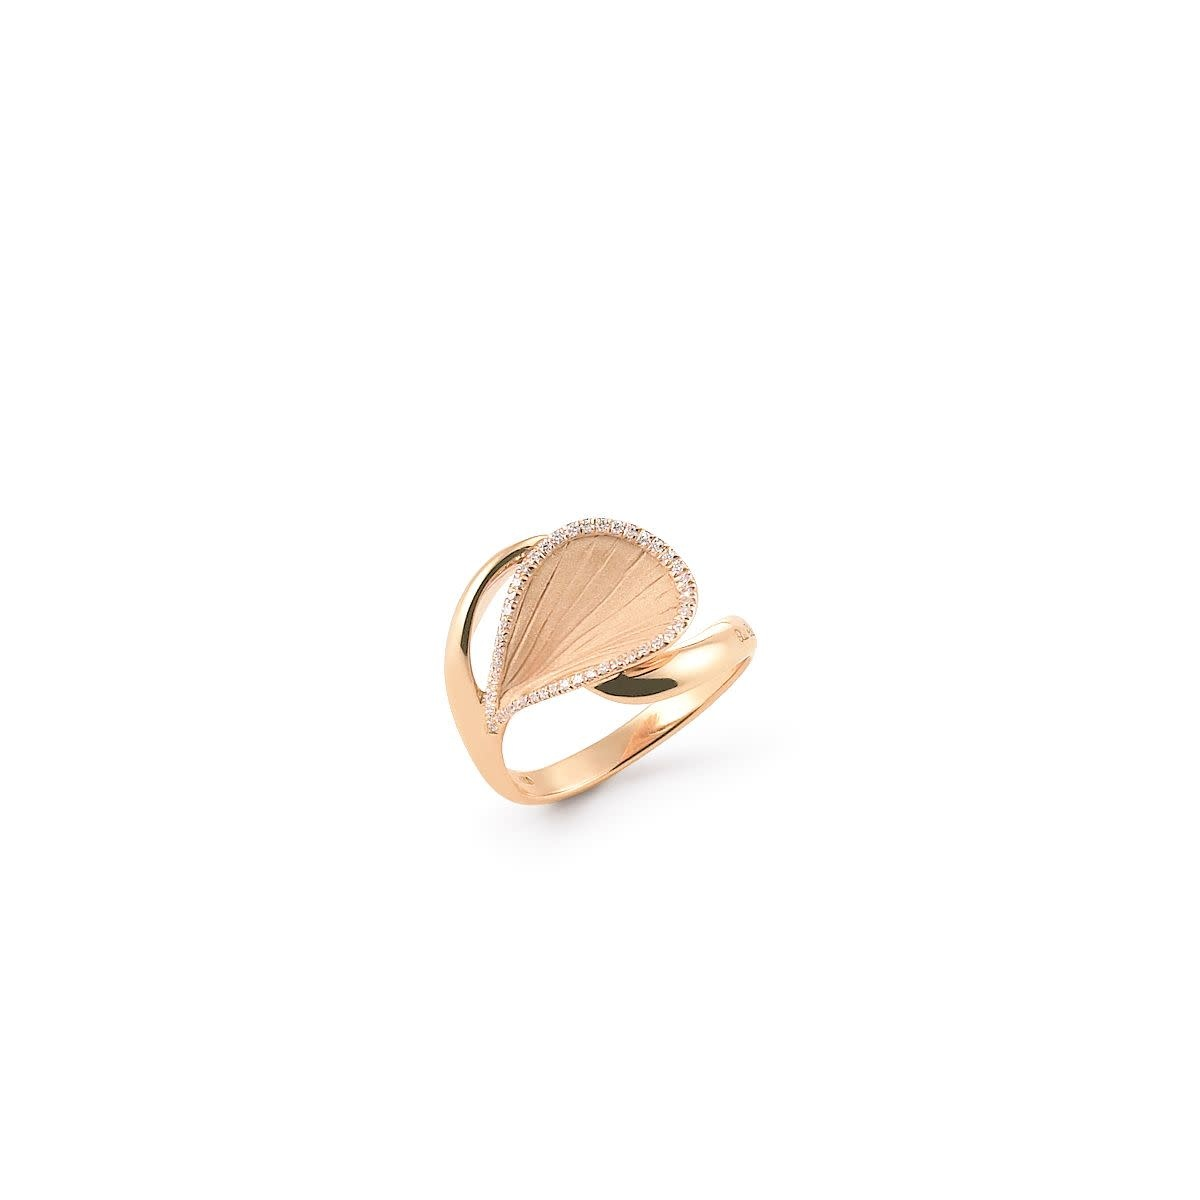 Goccia Collection Ring, 18Kt Orange Apricot Gold With Diamonds-1